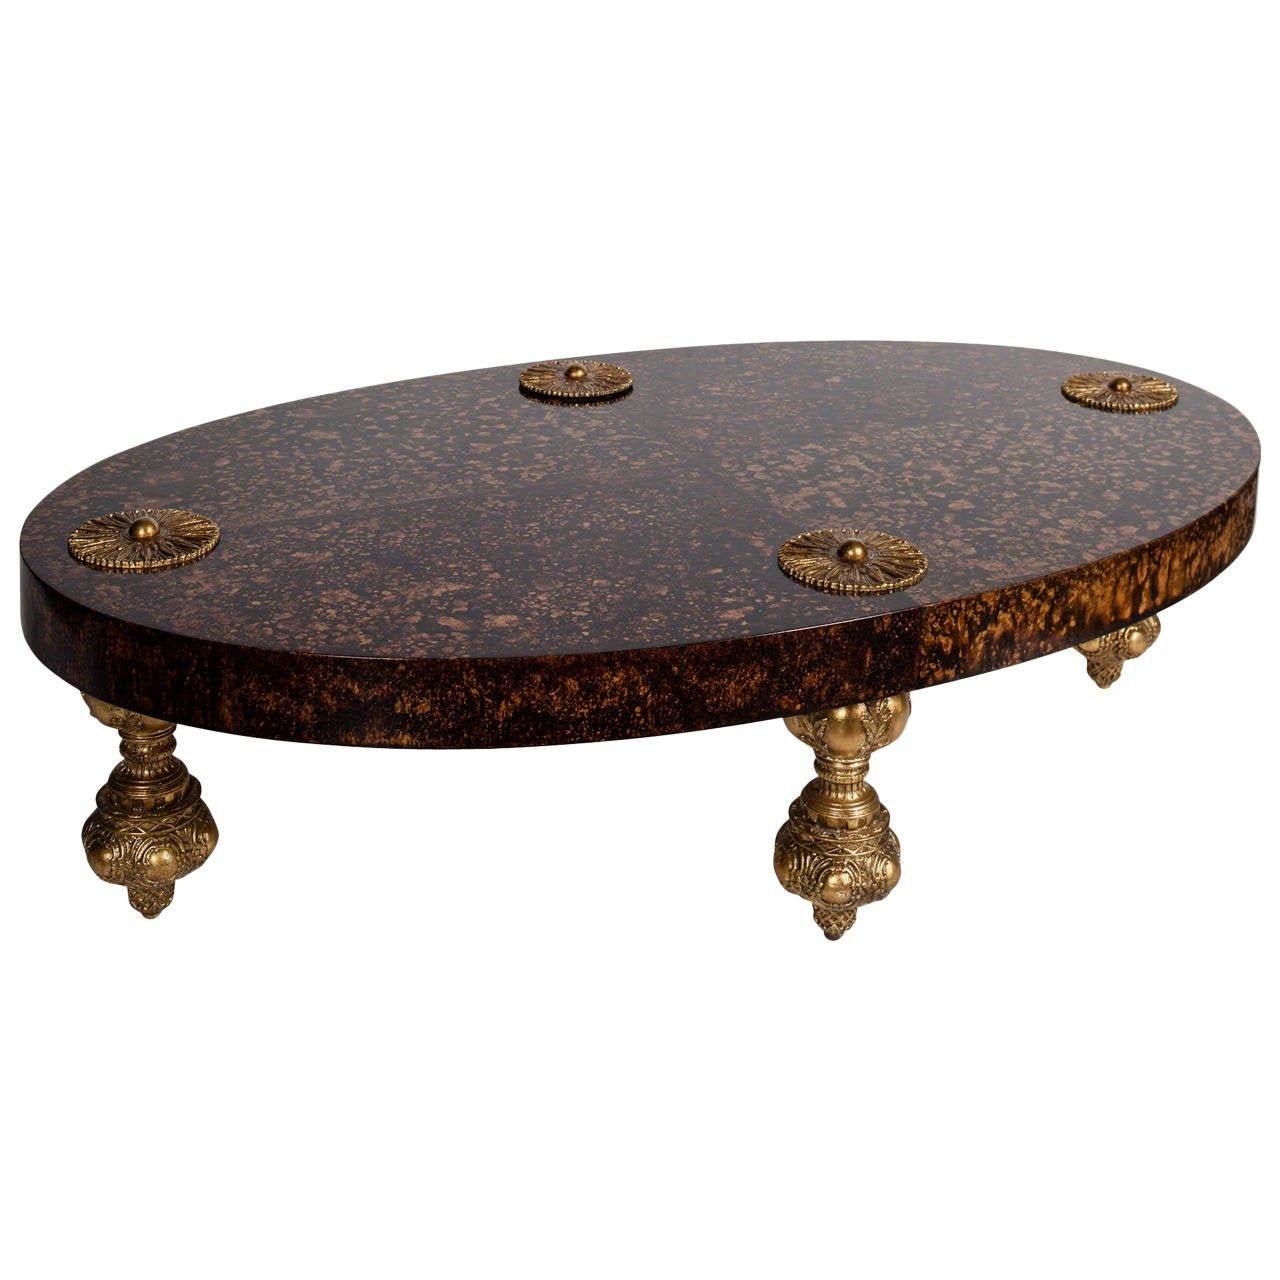 A French Baroque Style Coffee Table At 1stdibs